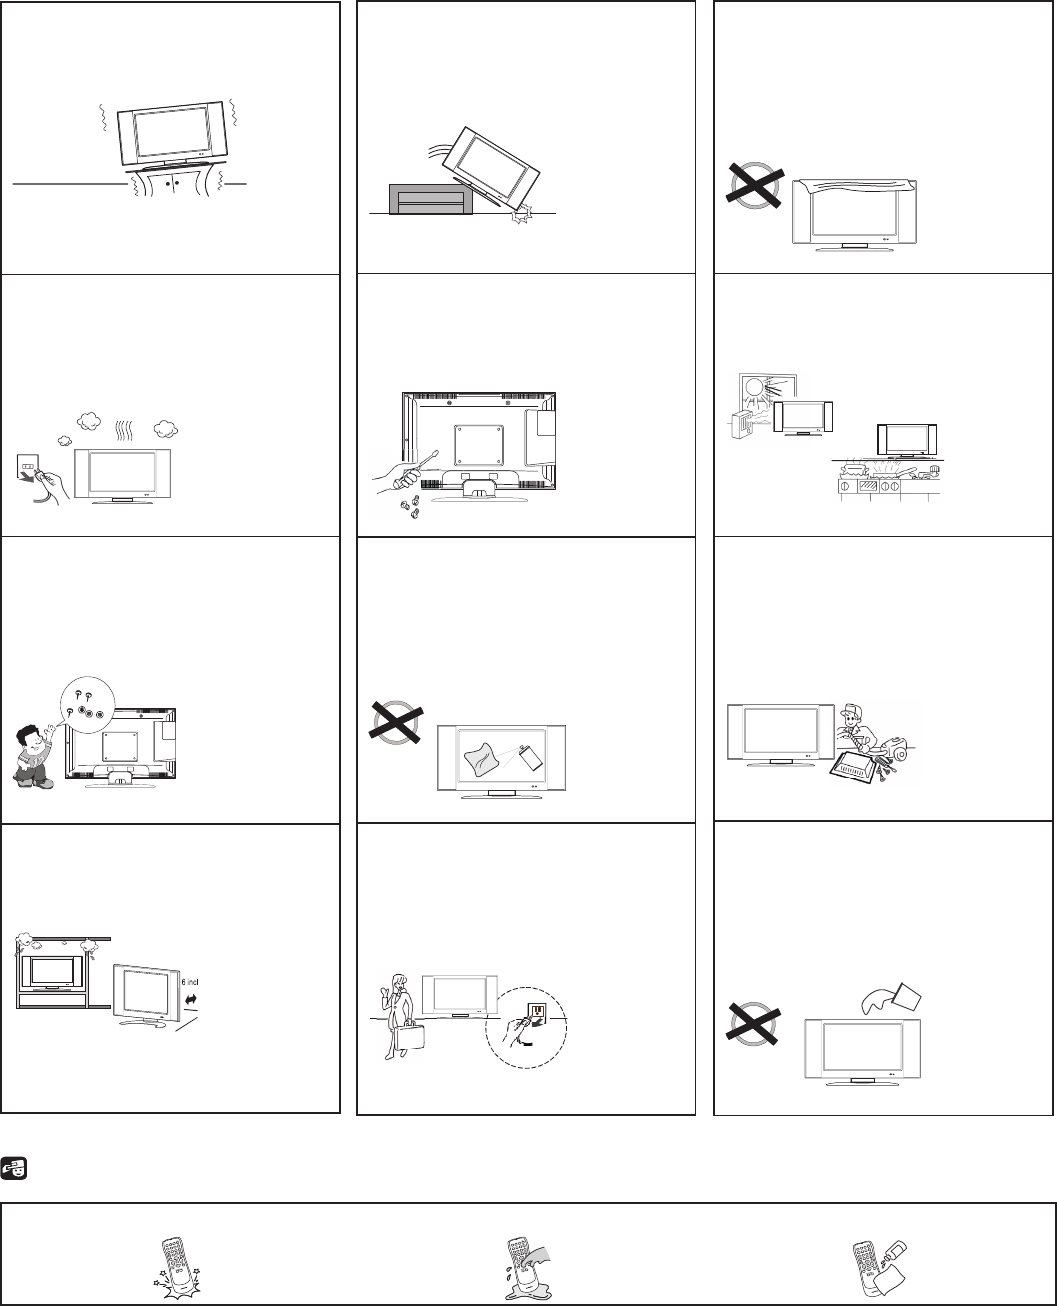 page 5 of haier flat panel television 49e4500r user guide Haier Wine Cooler HVUE08ABS User Manual Haier Instruction Manual